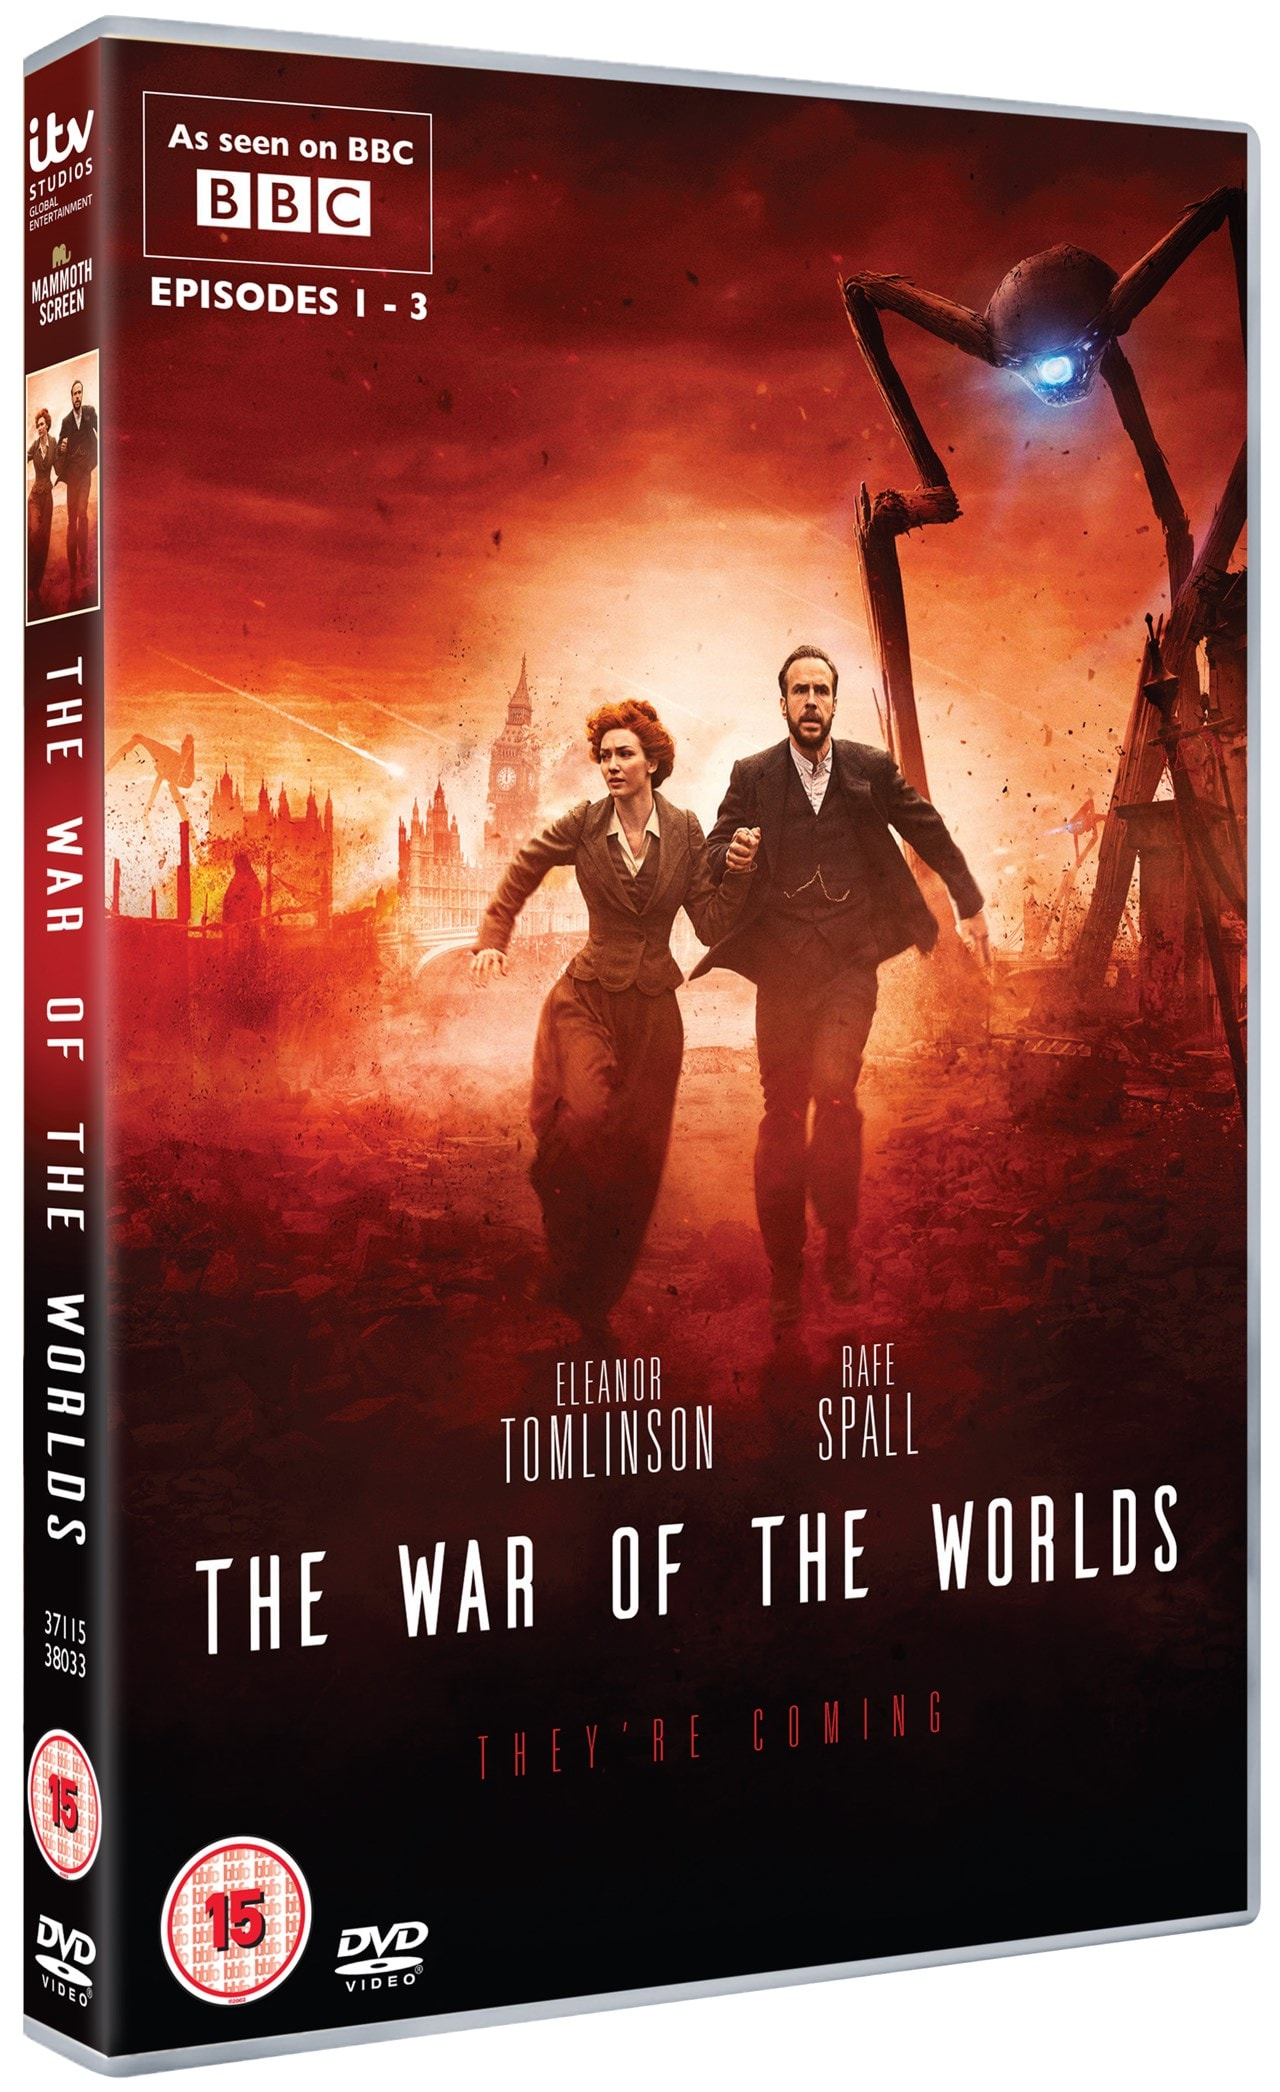 The War of the Worlds - 2